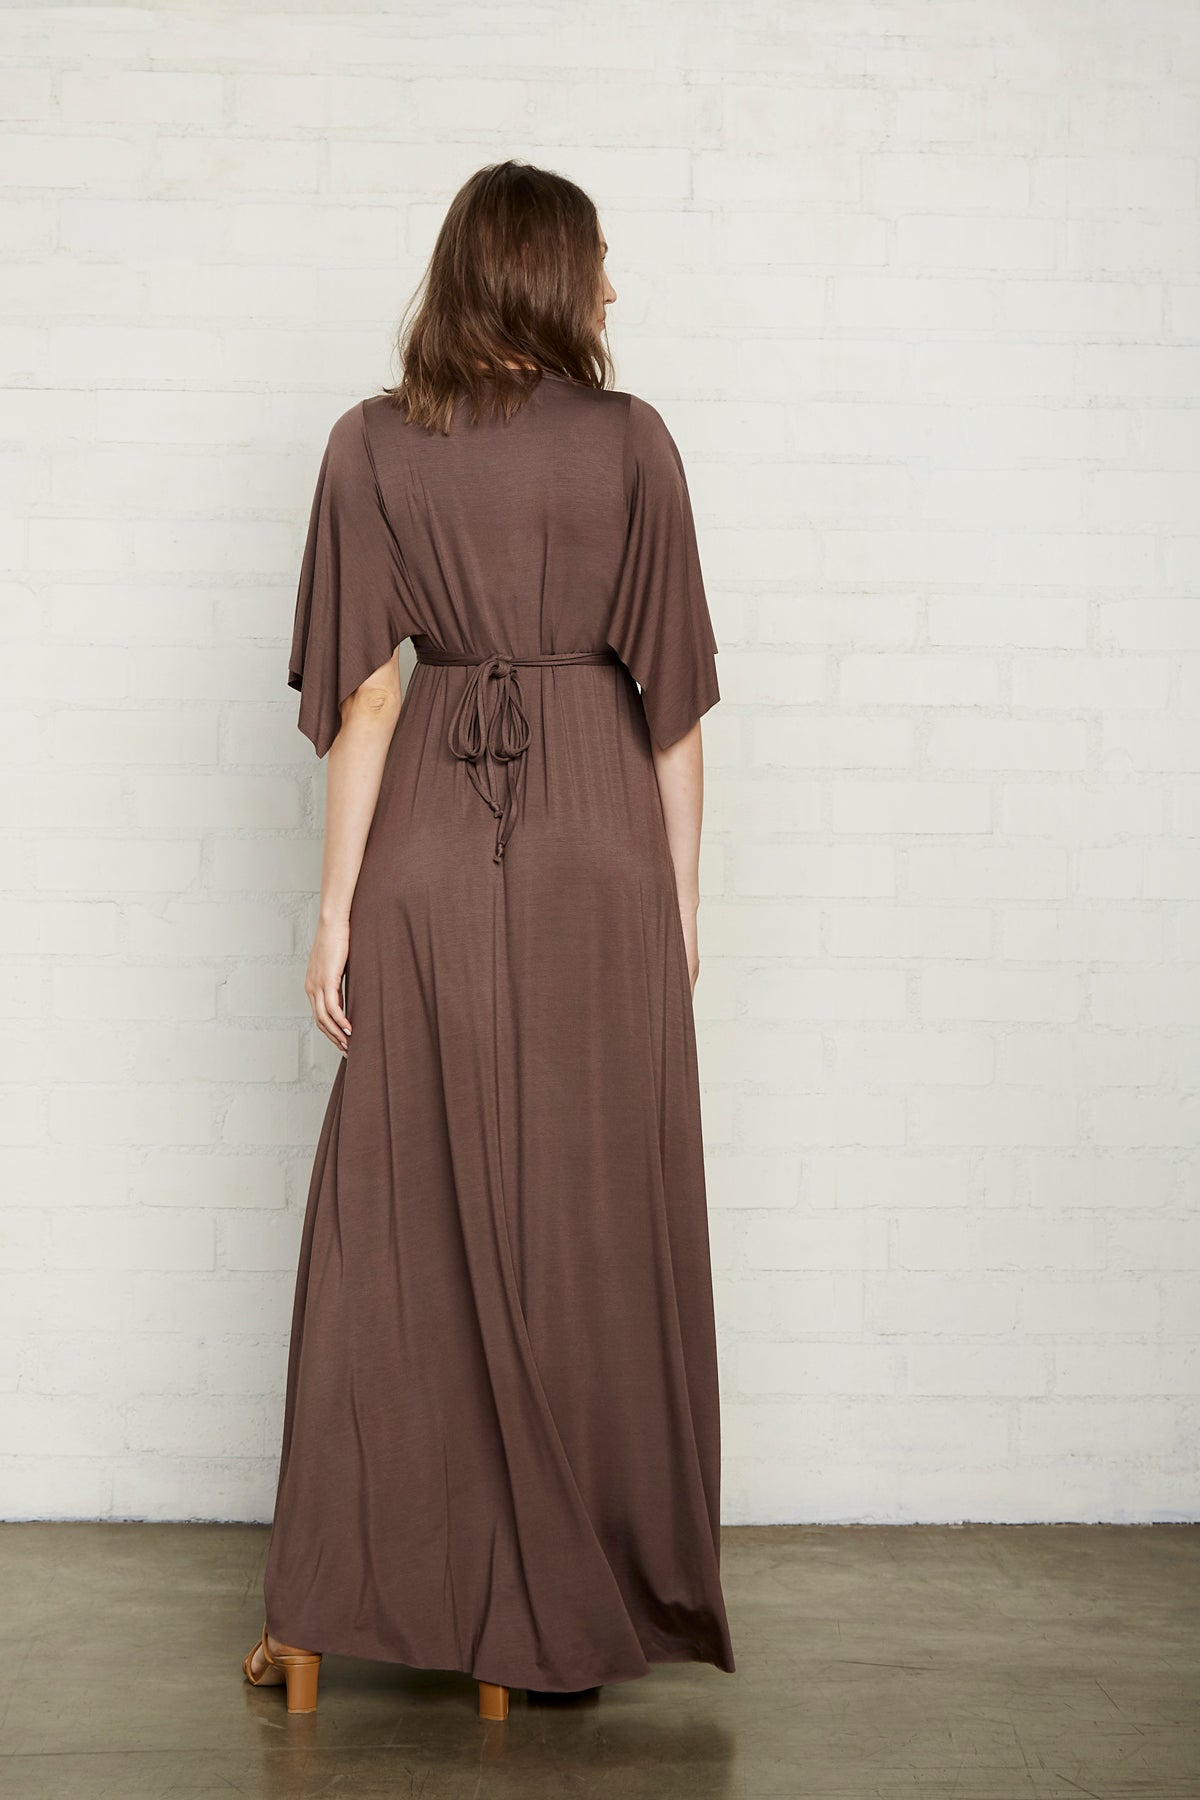 Long Caftan Dress - Cocoa, Maternity